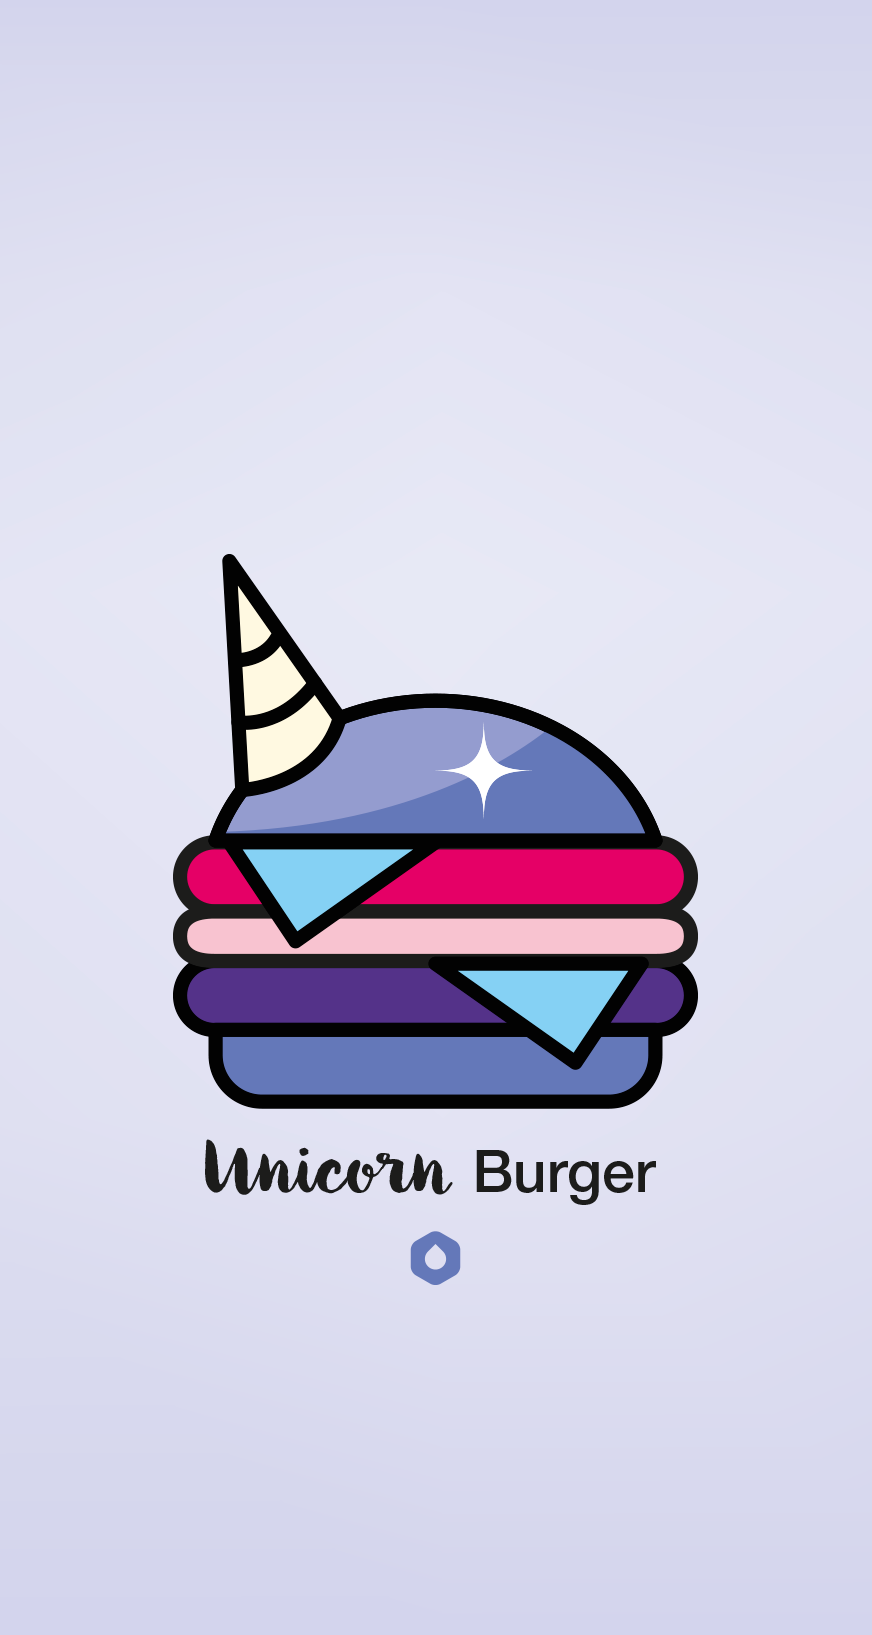 Wallpaper Pick Your Burger - iPhone6 - Unicorn